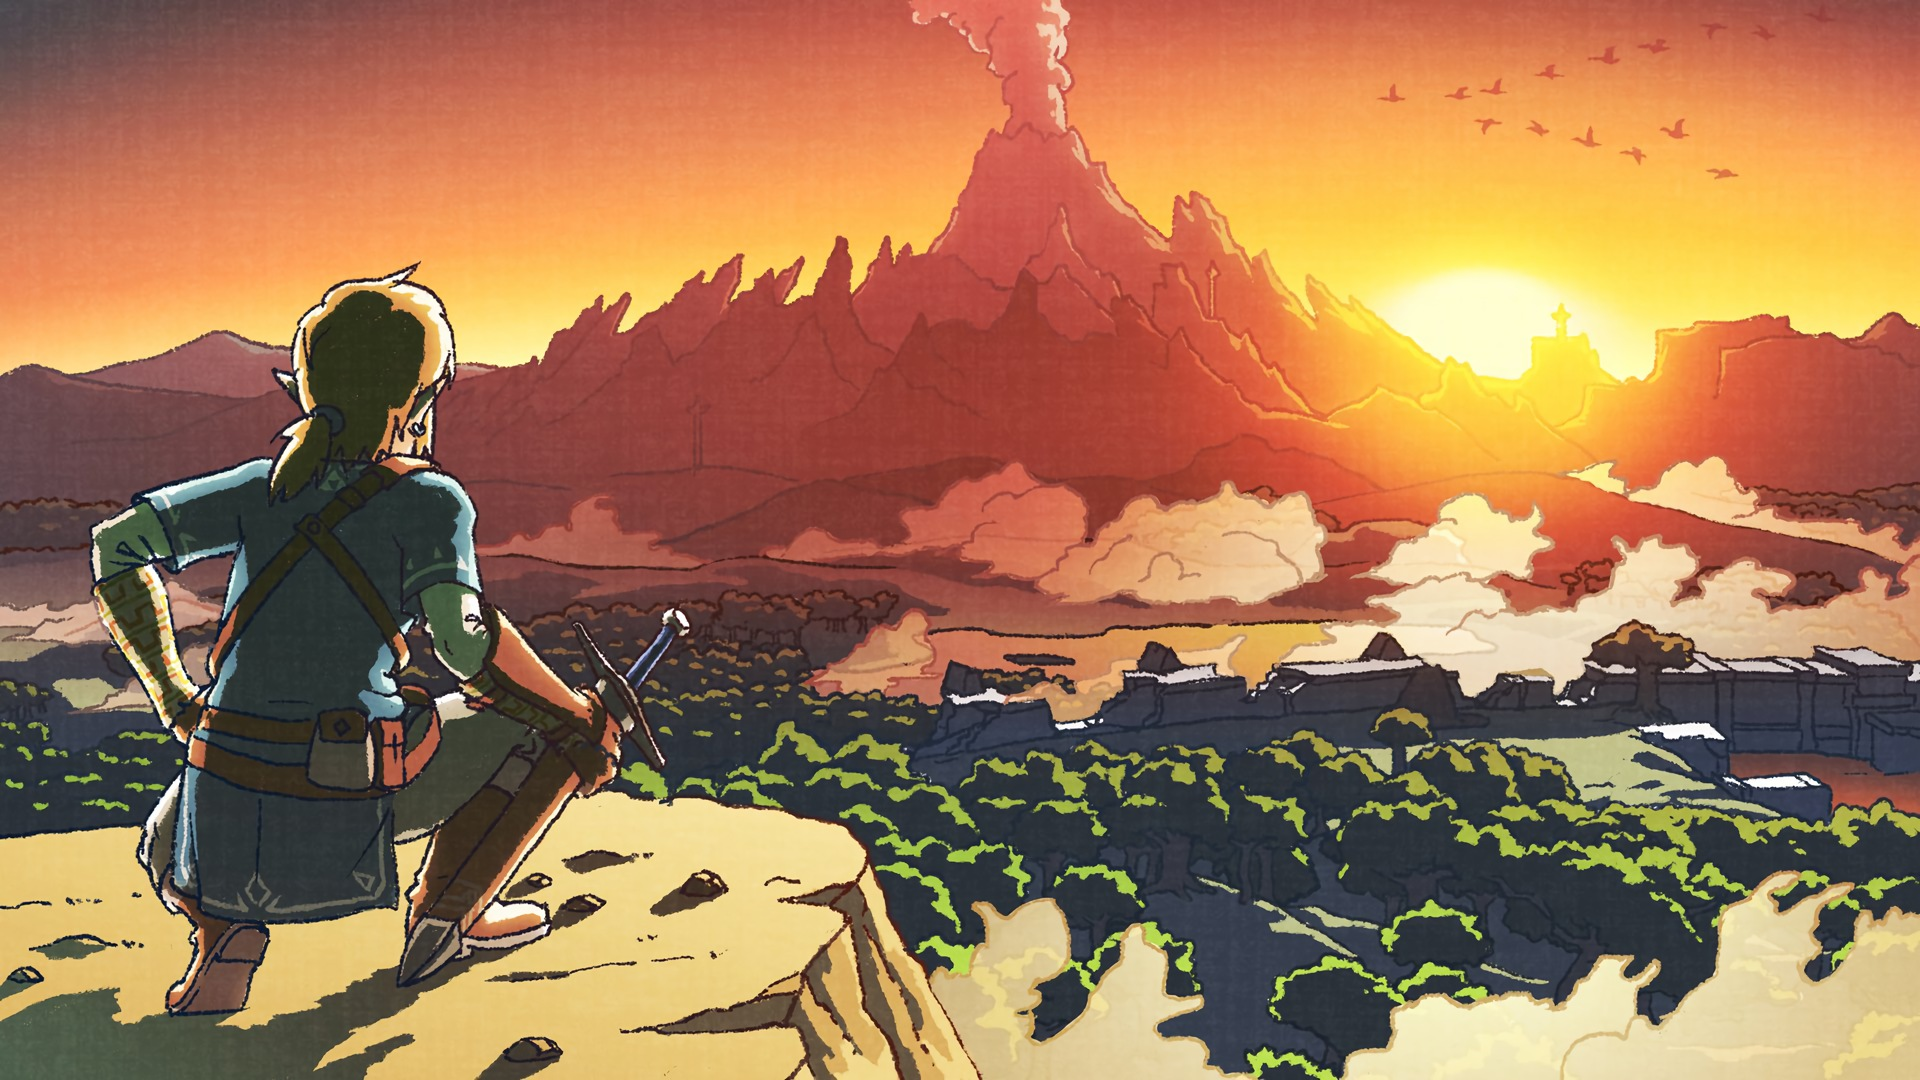 Free Download The Legend Of Zelda Breath Of The Wild Full Hd